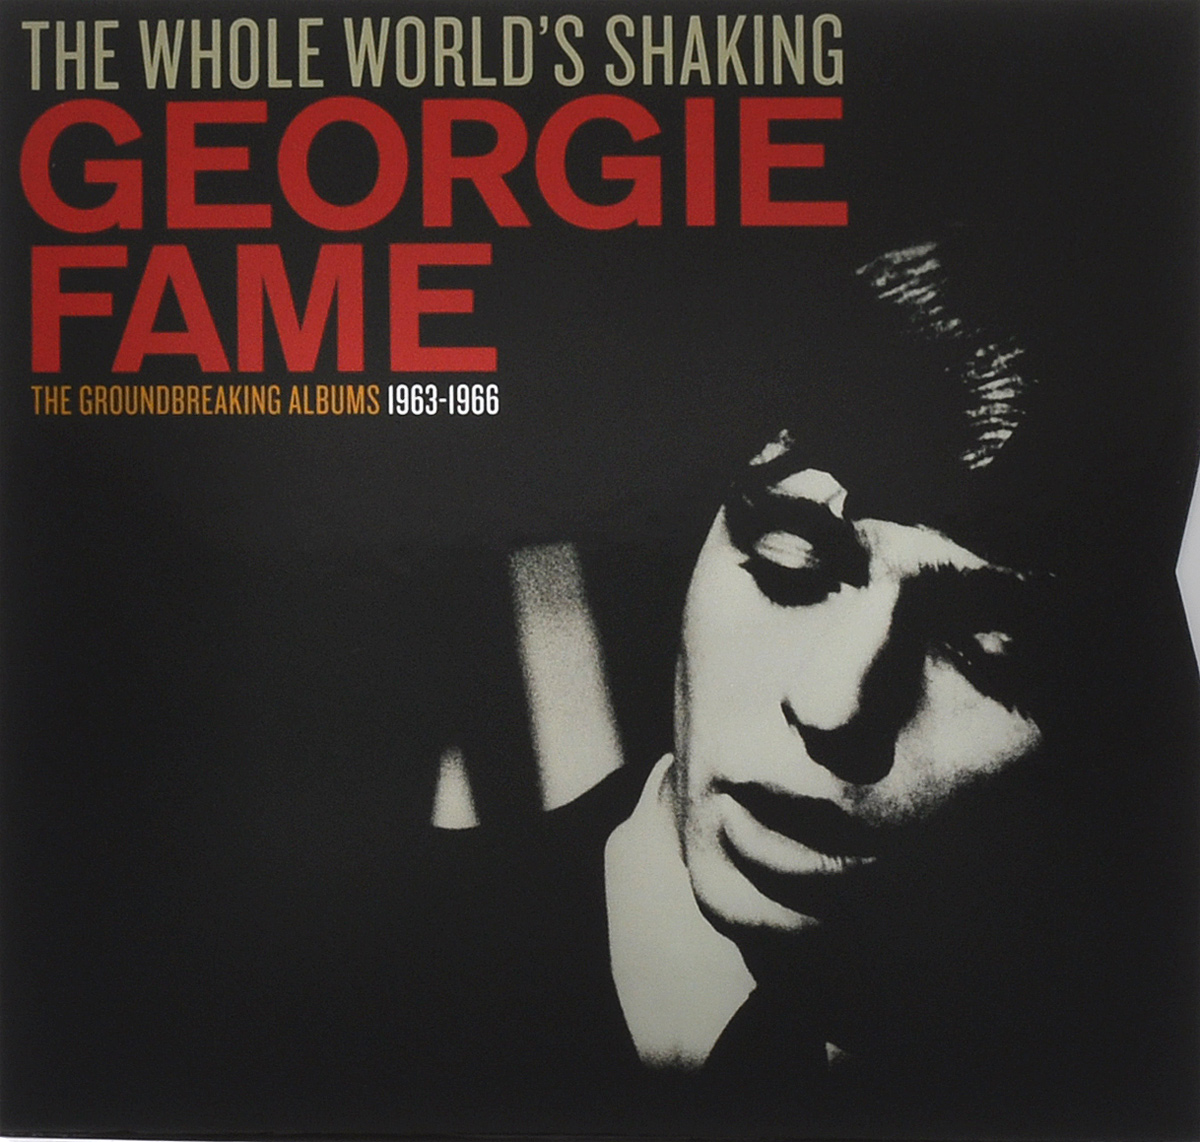 Джорджи Фэйм Georgie Fame. The Whole World's Shaking. The Groundbreaking Albums 1963-1966 (4 LP)